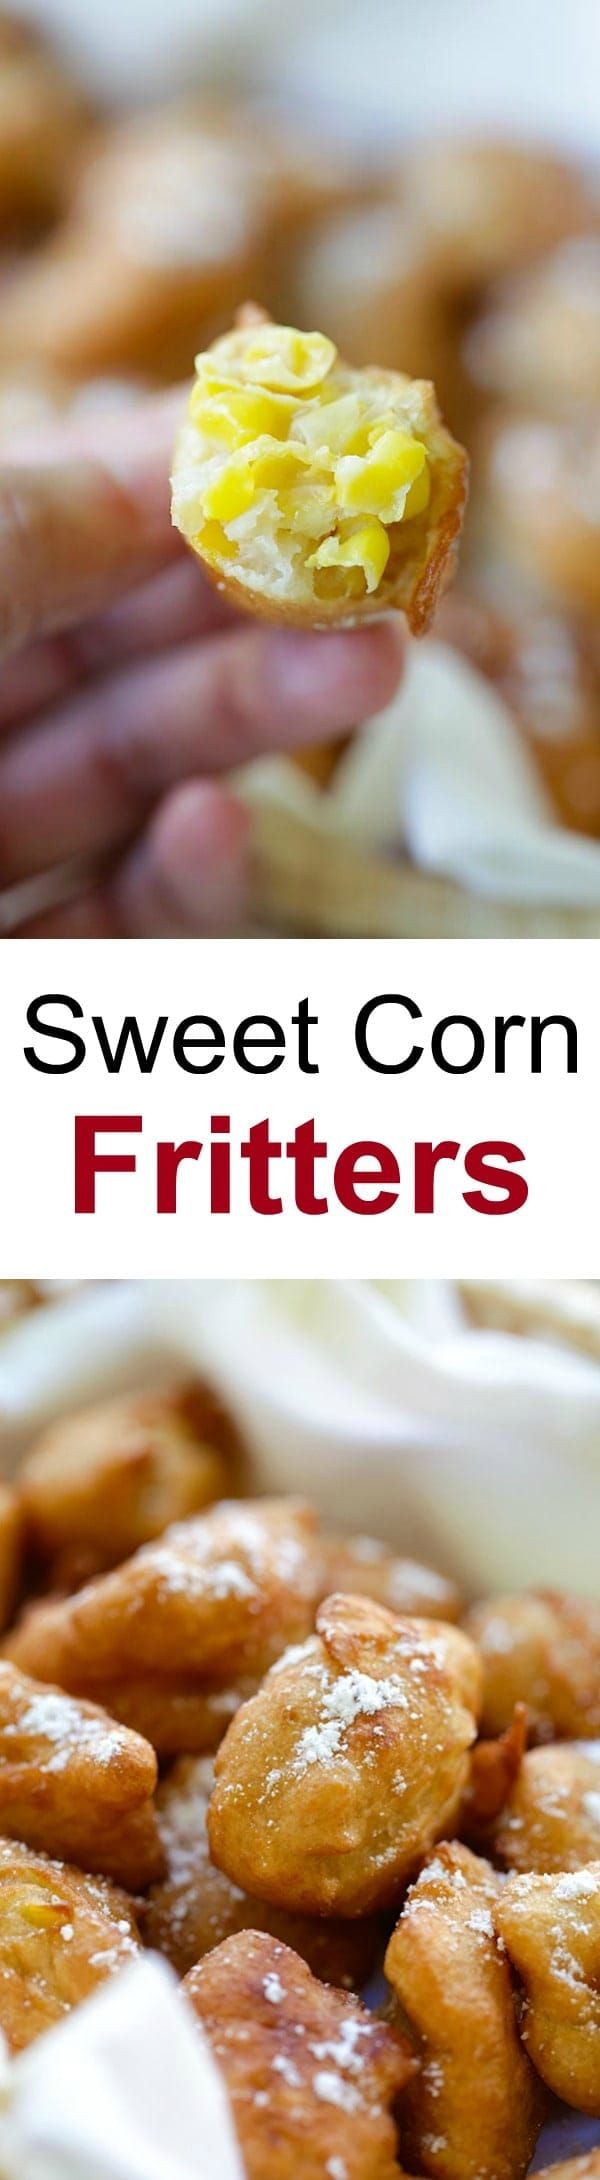 25+ Cream Corn Fritters ideas on Pinterest   Recipe for corn fritters ...